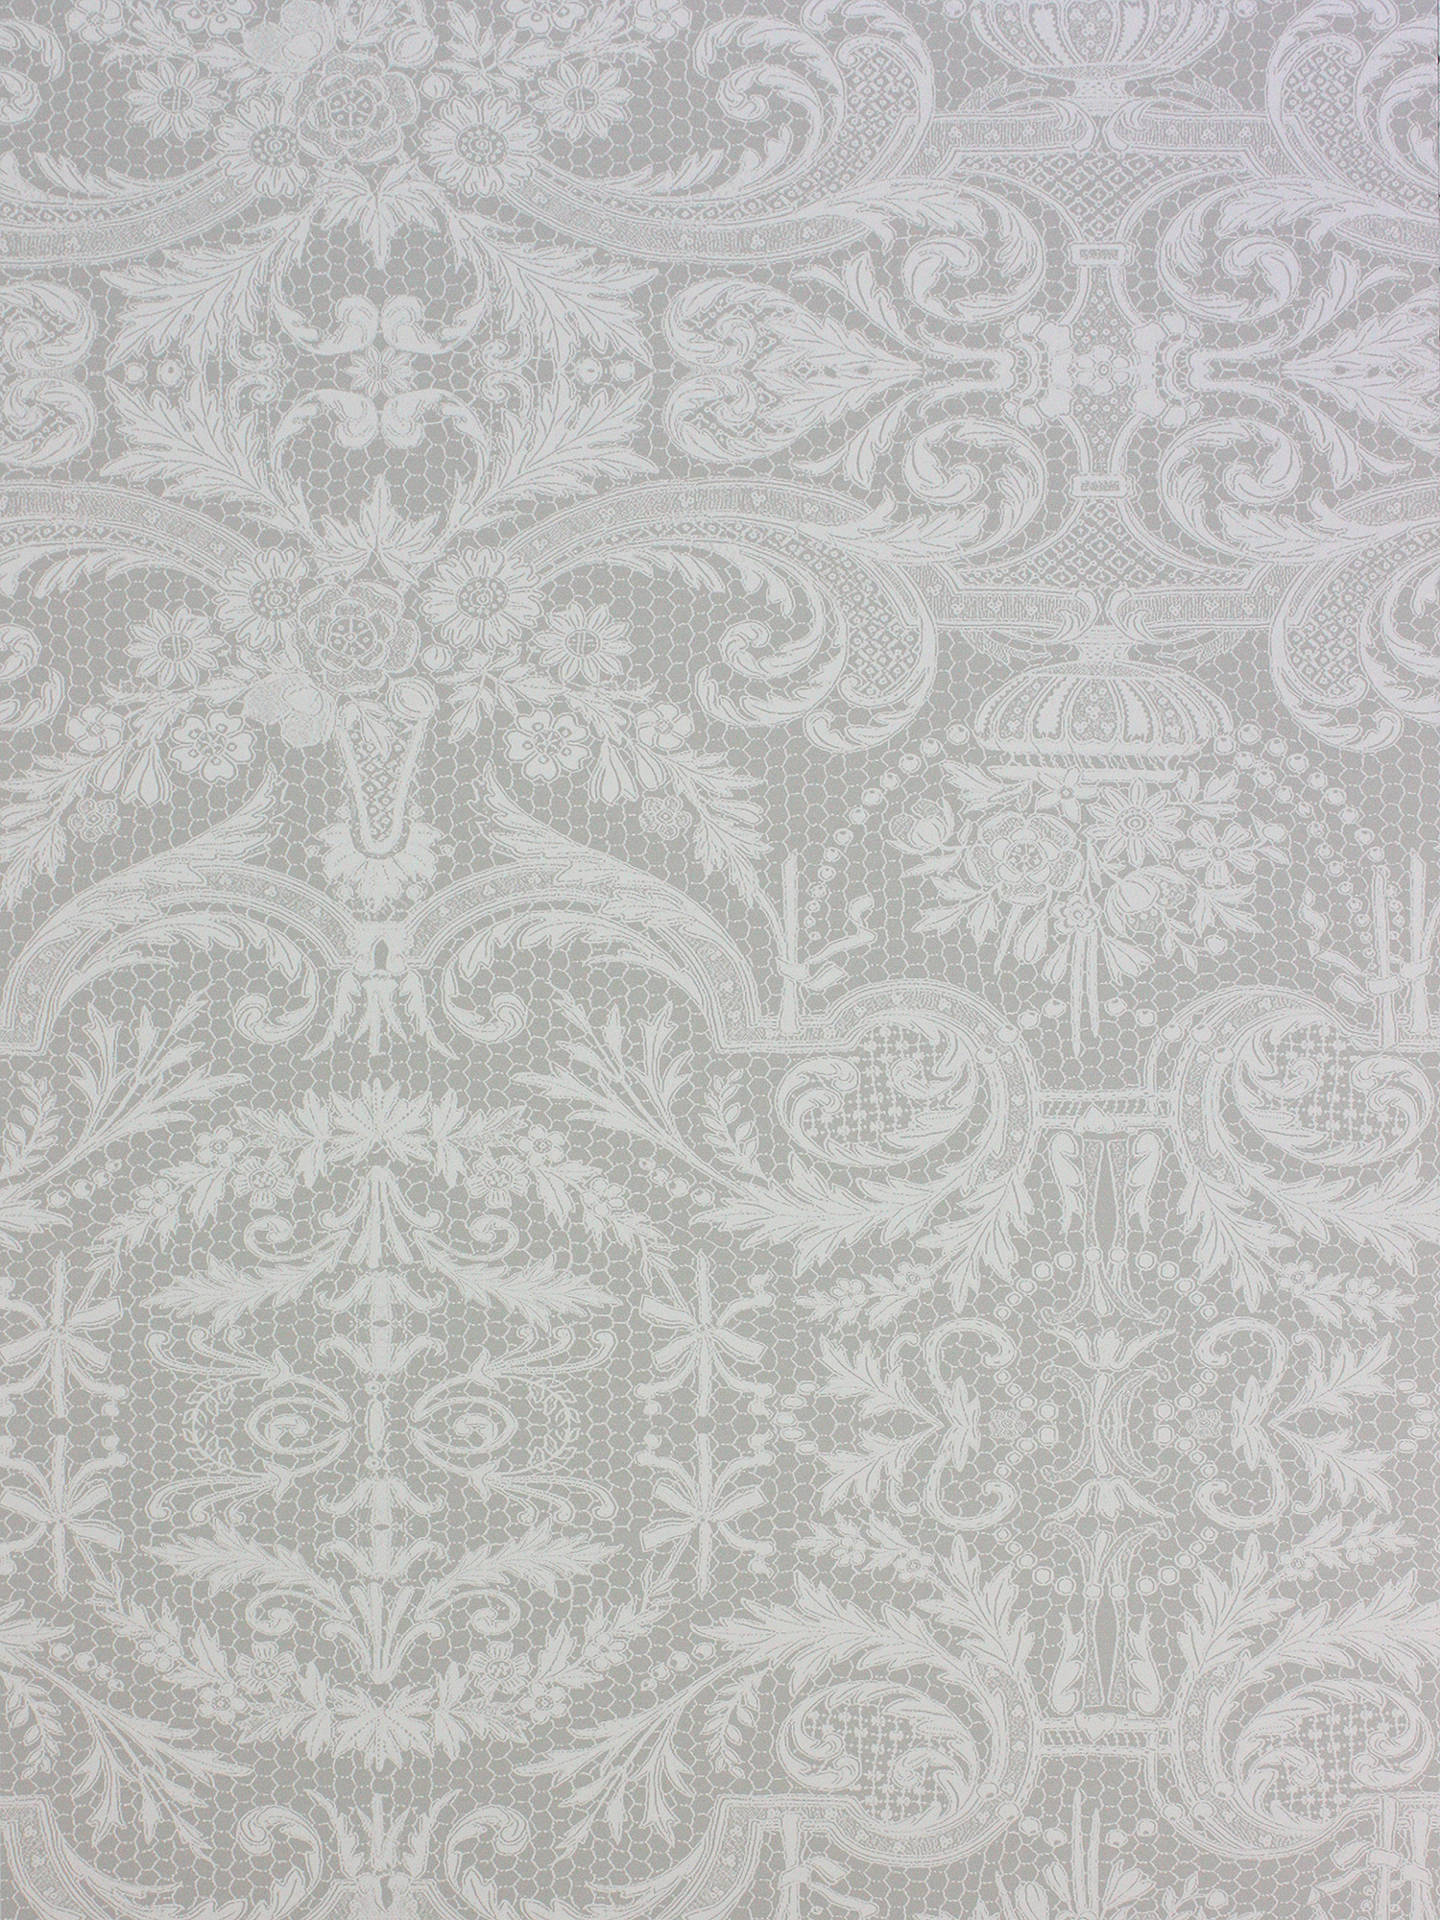 Buy Matthew Williamson Orangery Lace Wallpaper W7142-03 Online at johnlewis.com